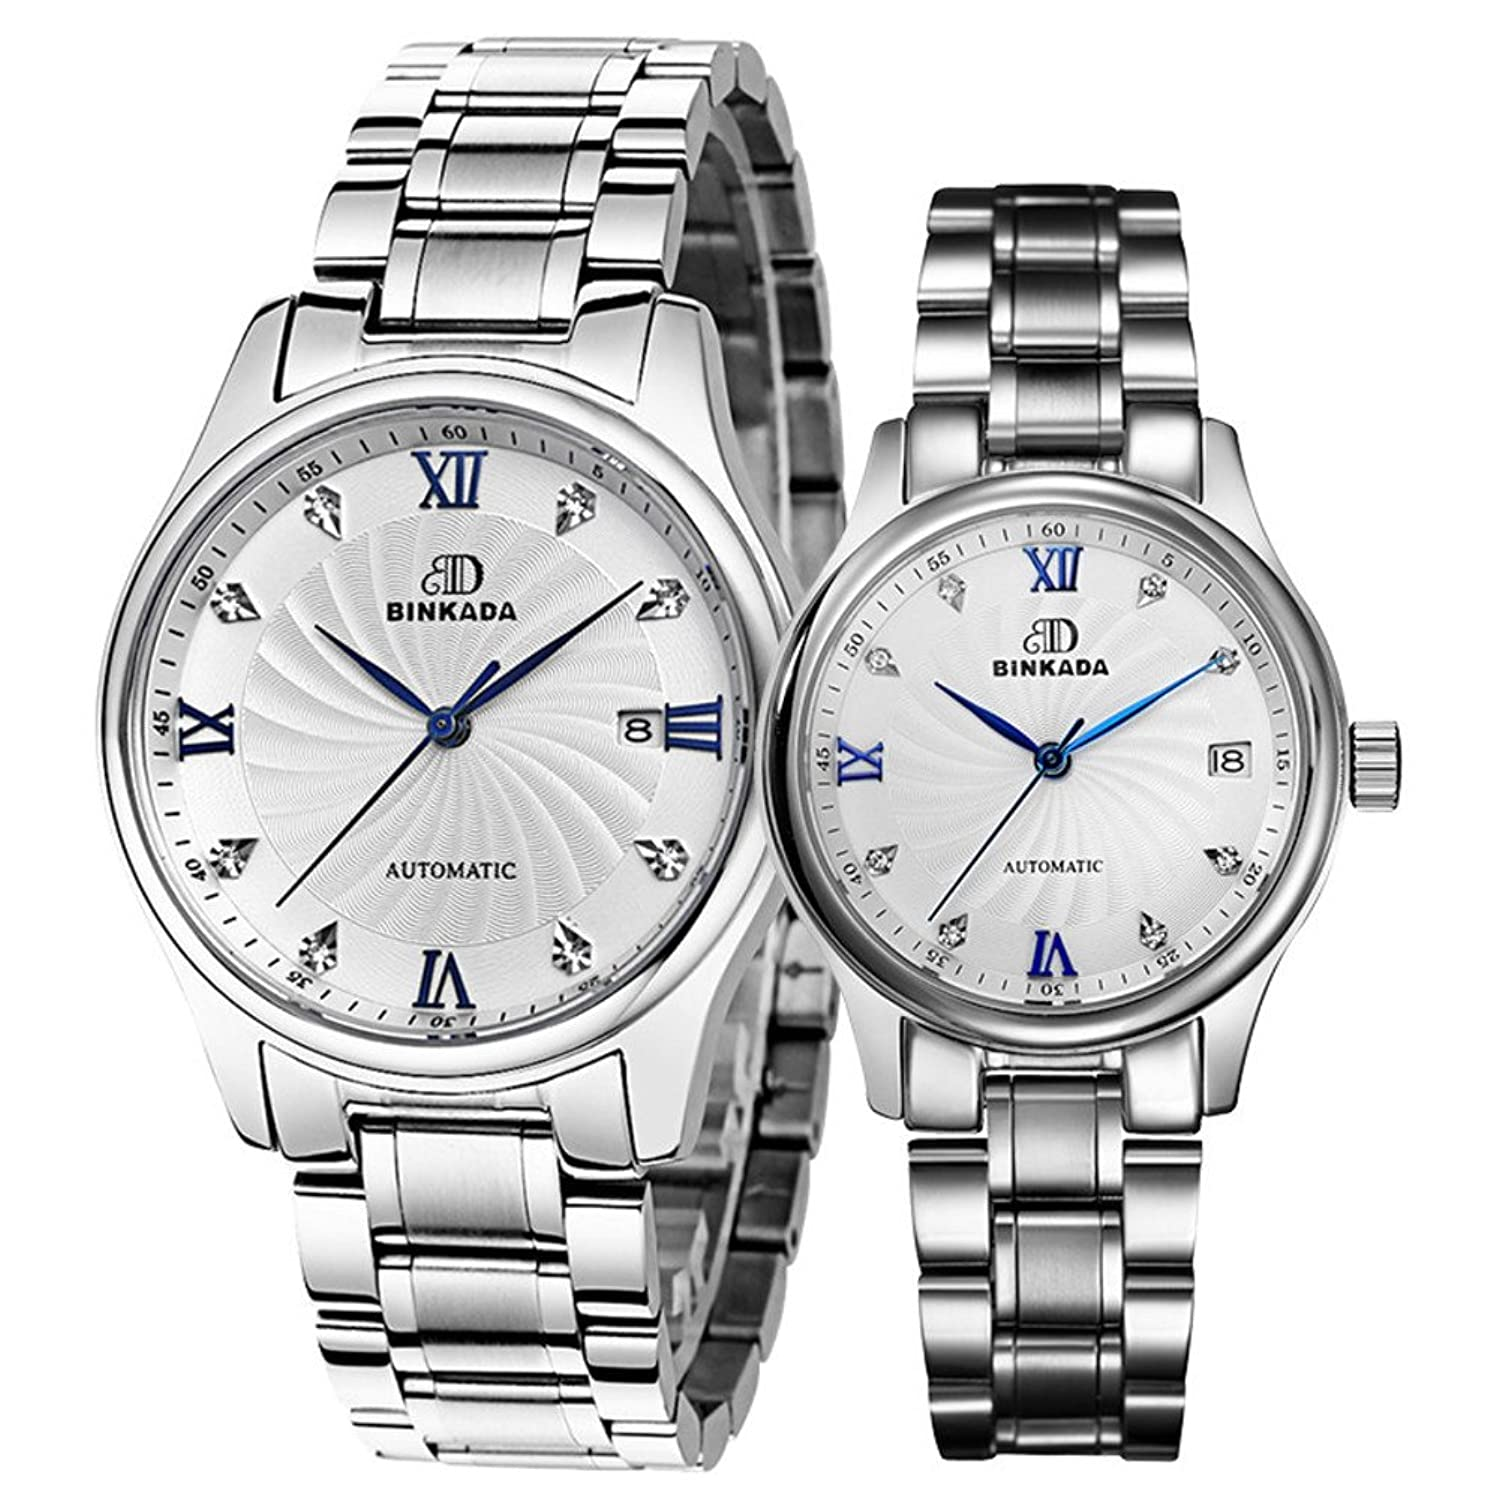 Mens Automatic Mechanical Watches / Coupleテーブル/防水watch-c B06XC9H6T9